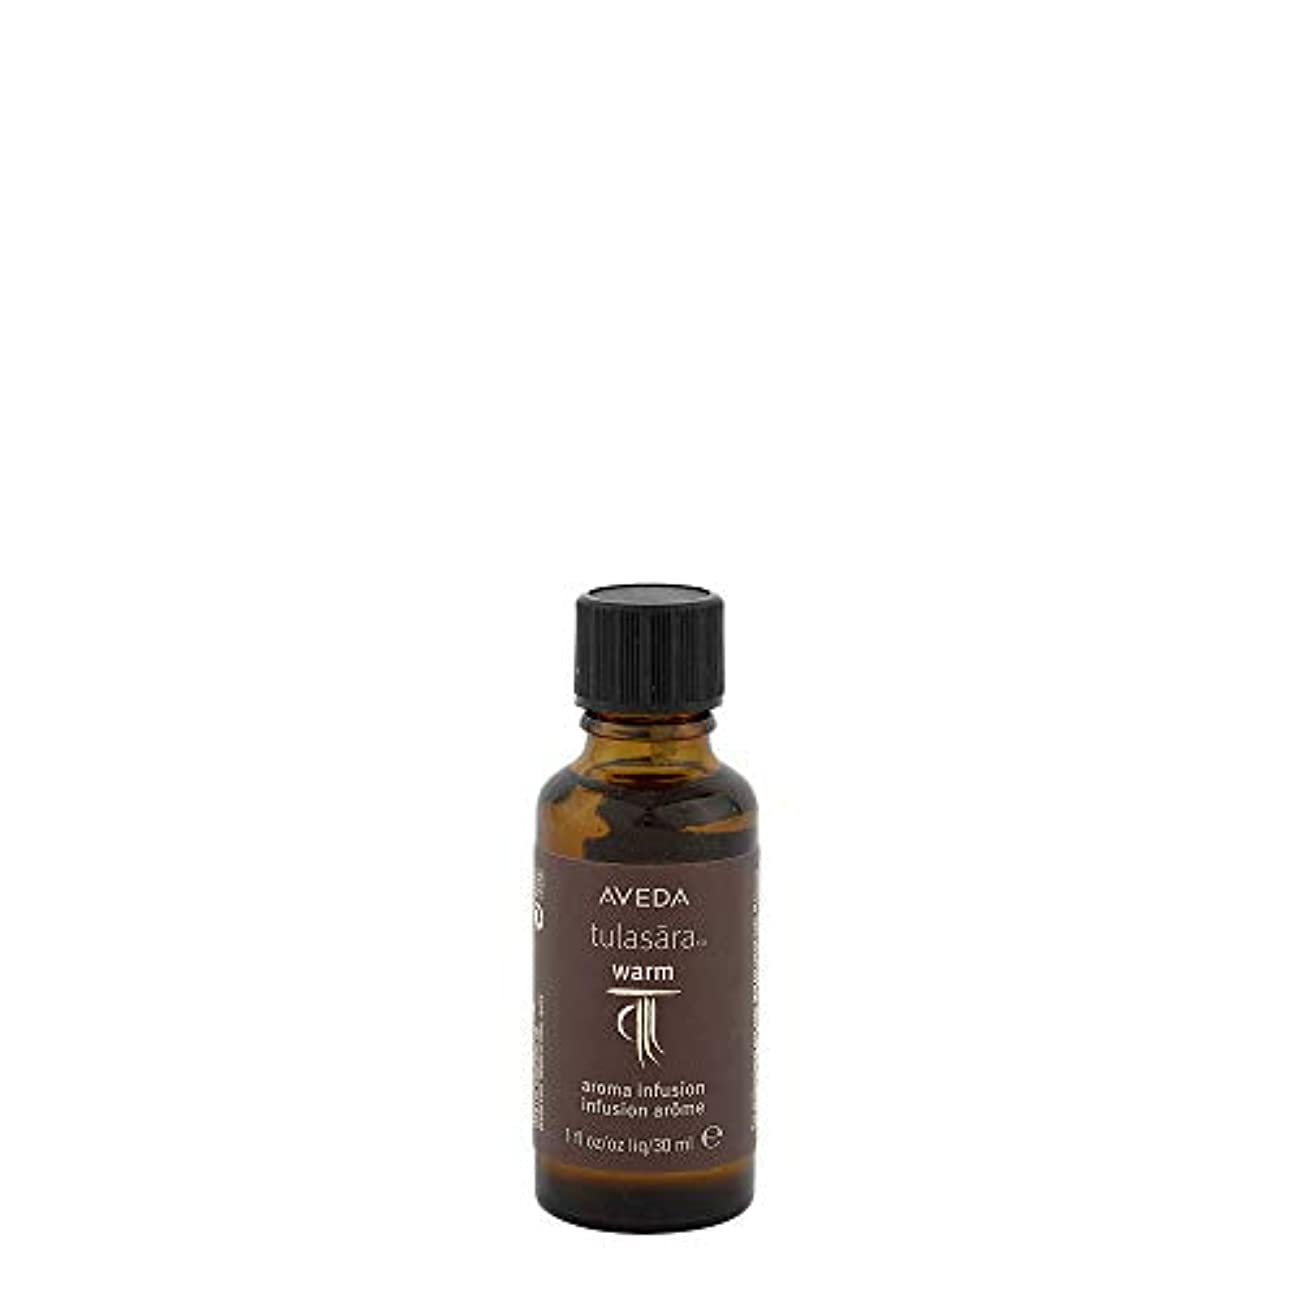 シーボード倒錯兵器庫アヴェダ Tulasara Warm Aroma Infusion (Professional Product) 30ml/1oz並行輸入品